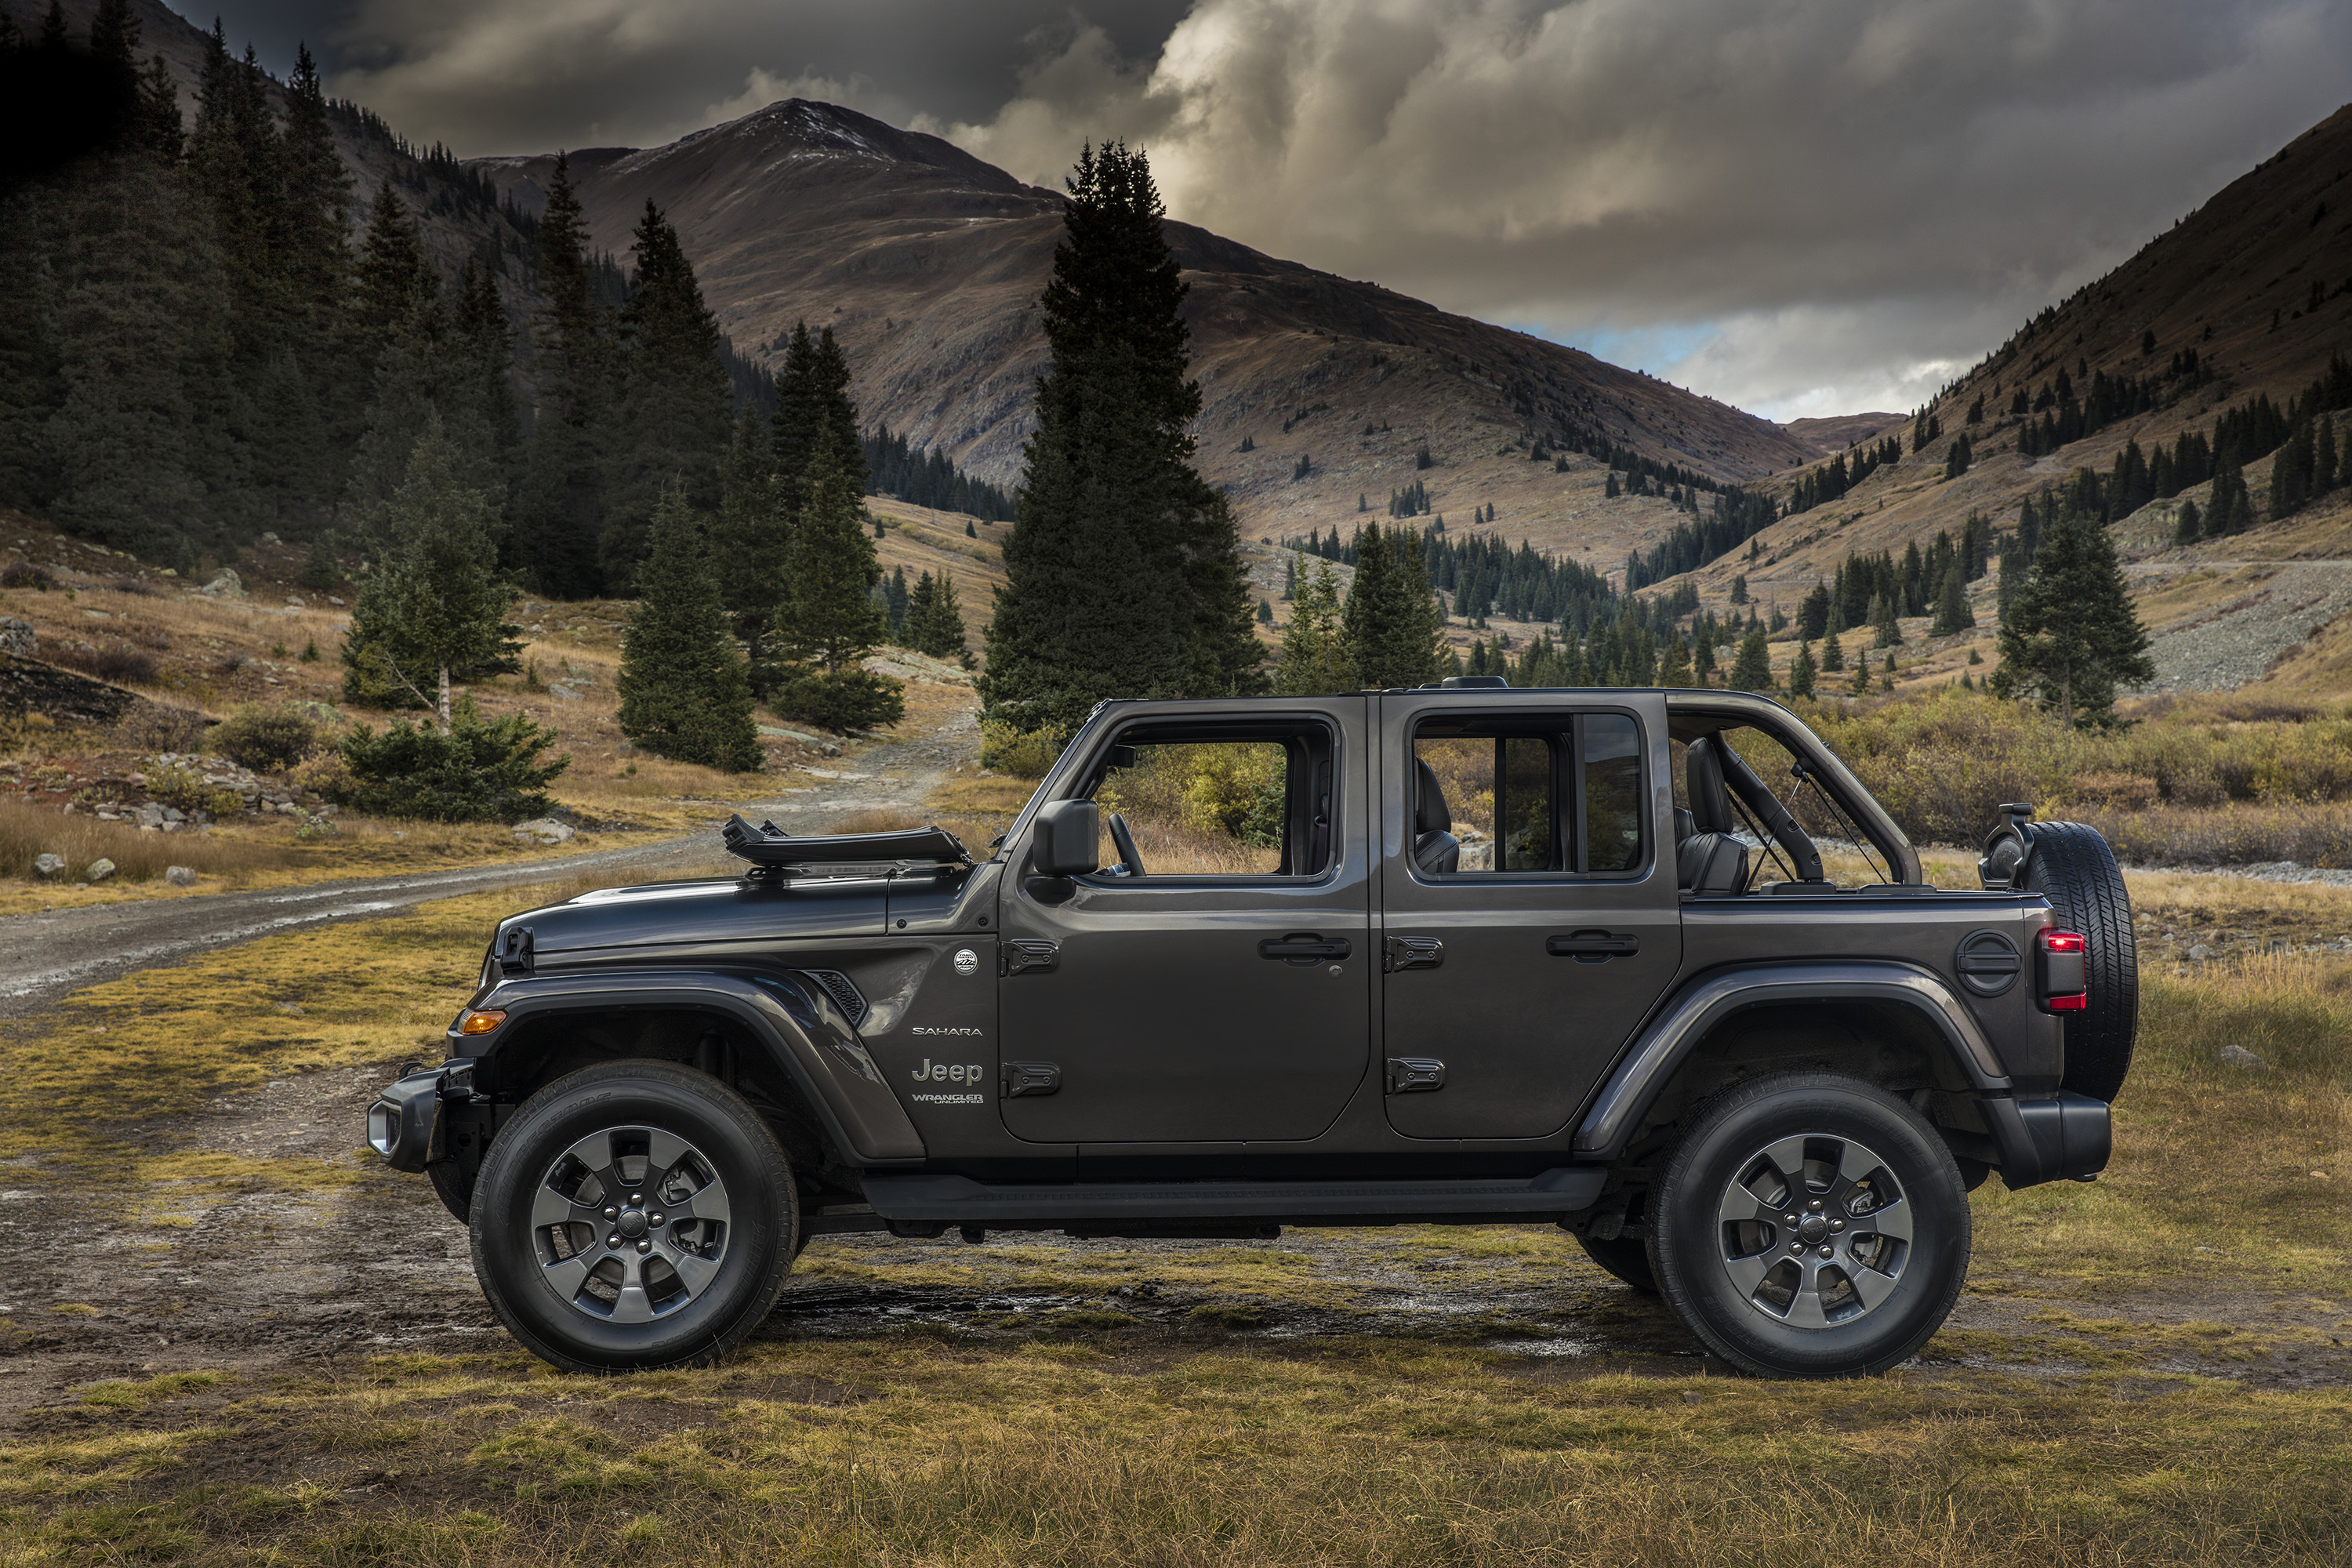 2020 Jeep Wrangler EcoDiesel Release Date >> The New Powertrains Of The 2020 Jeep Wrangler The News Wheel